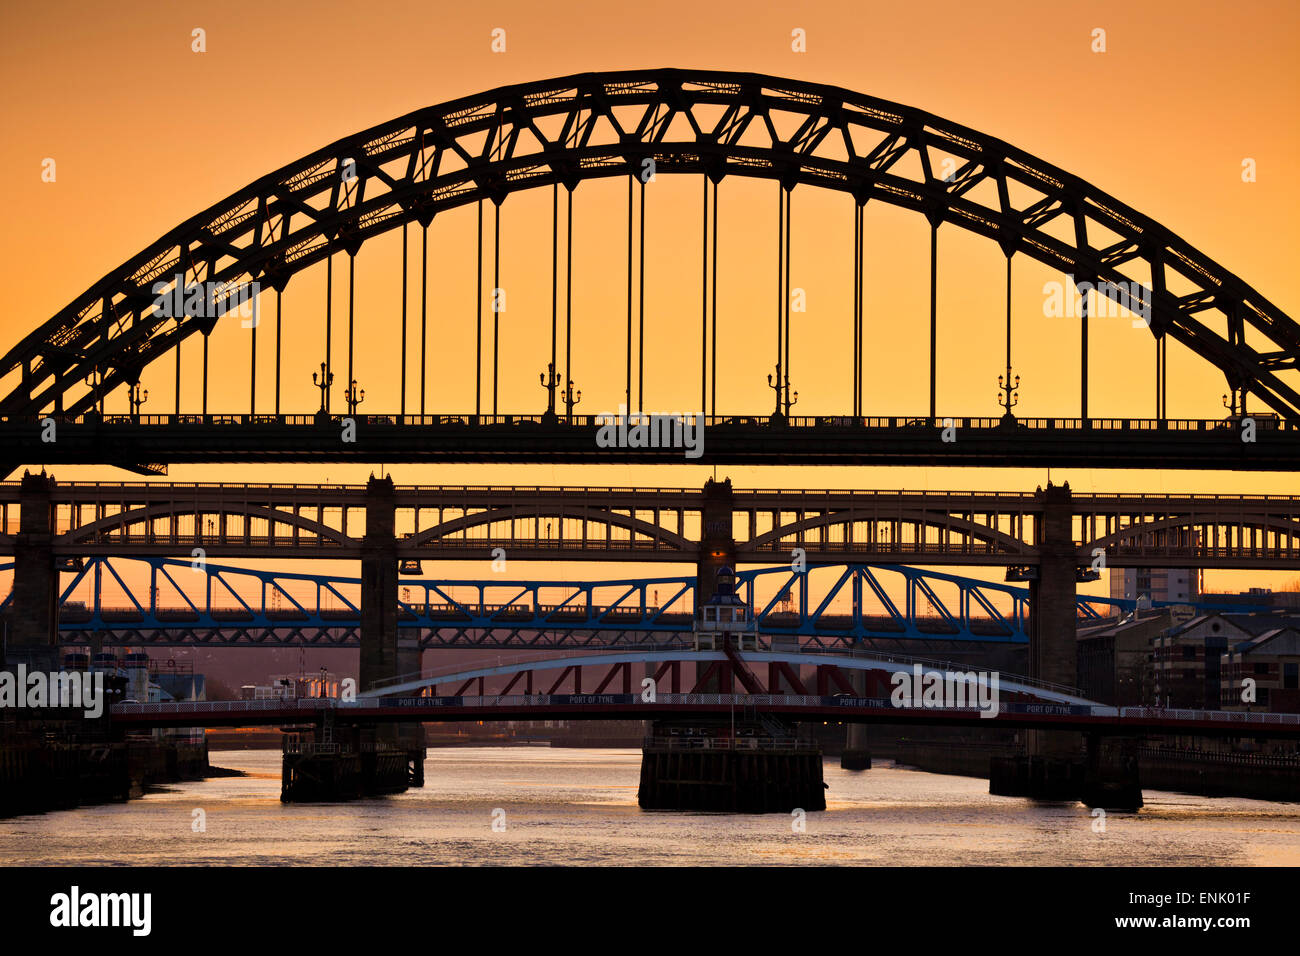 Newcastle upon Tyne skyline, Gateshead with the Tyne Bridge over River Tyne, Tyne and Wear, Tyneside, England, United - Stock Image